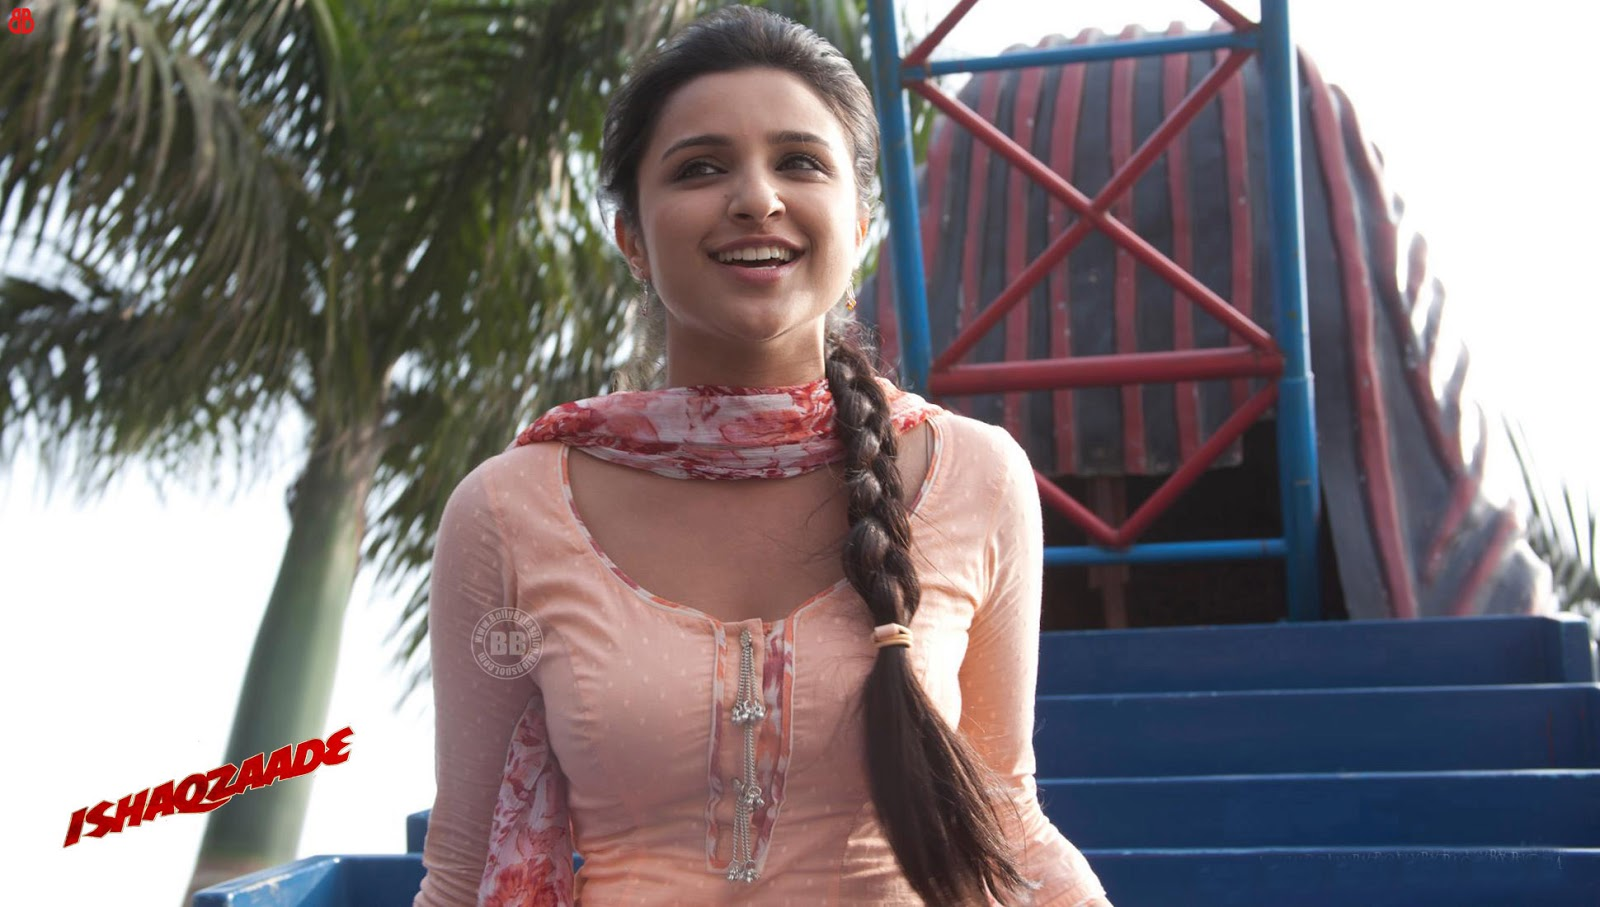 http://1.bp.blogspot.com/-hddV7Re16h8/UXp5ff7hsRI/AAAAAAAAGfU/W89d-aHTZ8A/s1600/parineeti+chopra+hd+wallpapers+++latest+new+collection+(6).jpeg